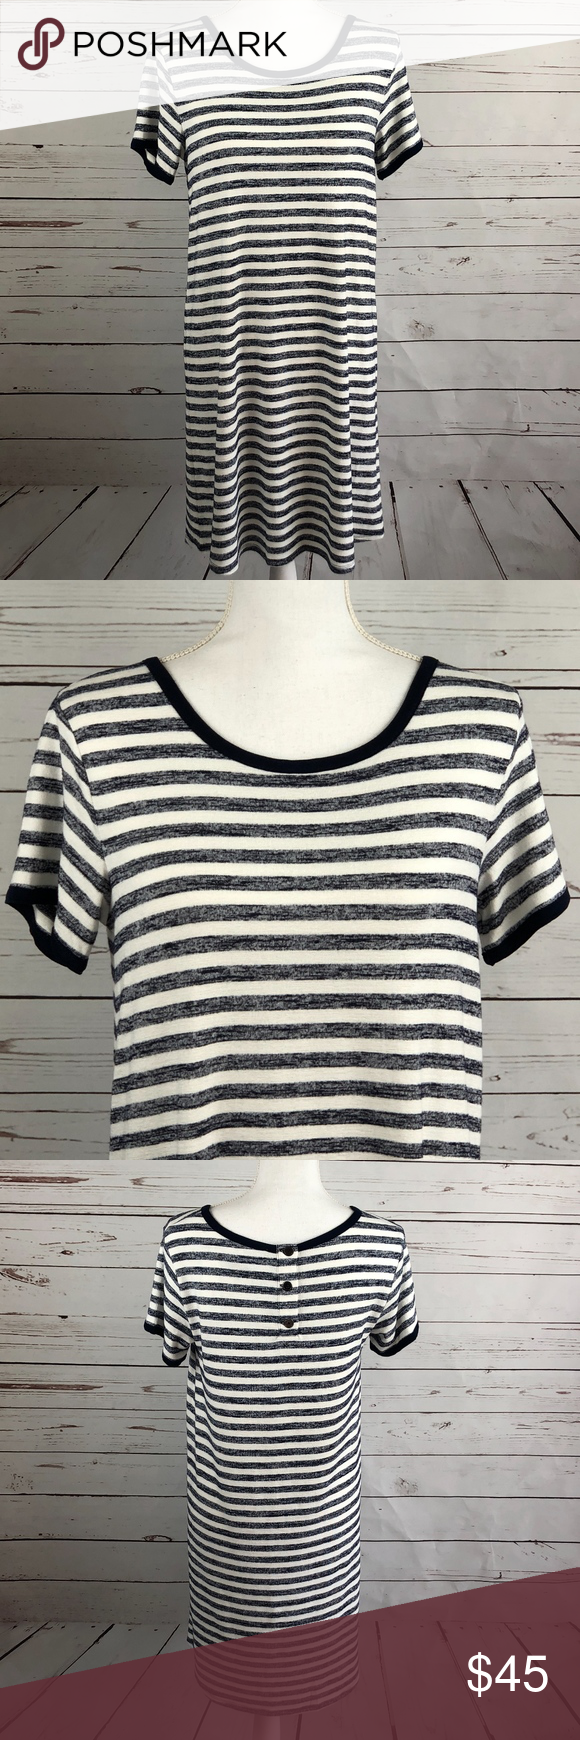 46c8bd4eddbe8 Market & Spruce Britta T-shirt Dress Stitch Fix Cute and comfy option for  warmer weather. Striped t-shirt dress with buttons in the back from Market  and ...